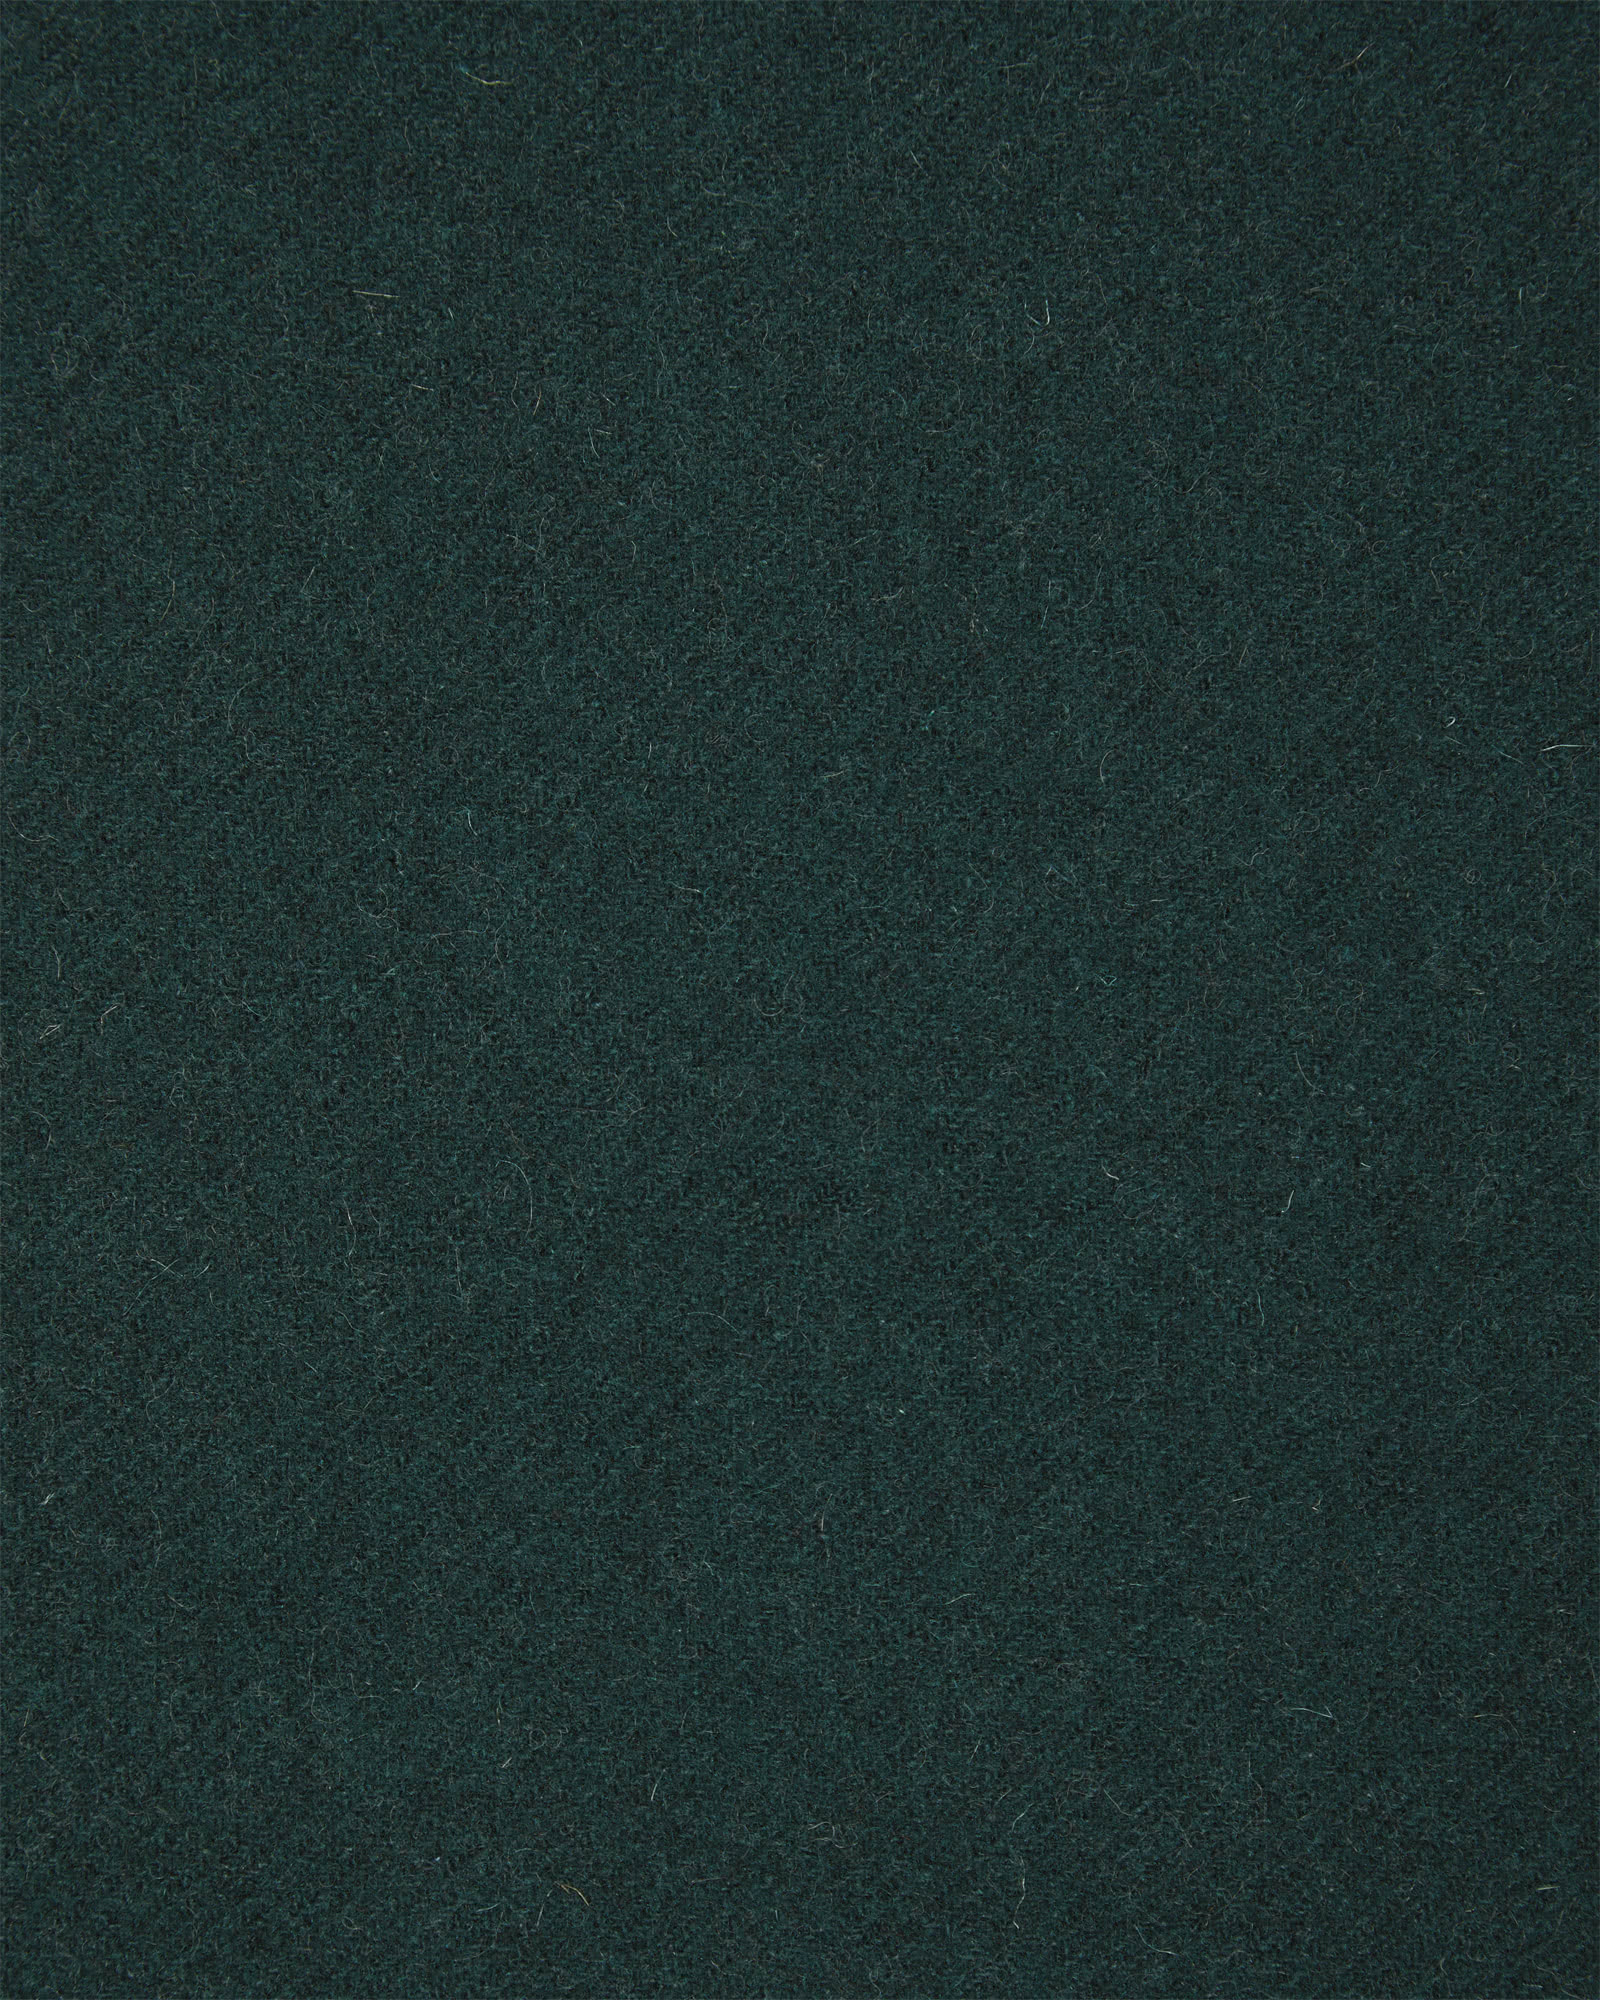 Fabric by the Yard – Wool Flannel Fabric, Green